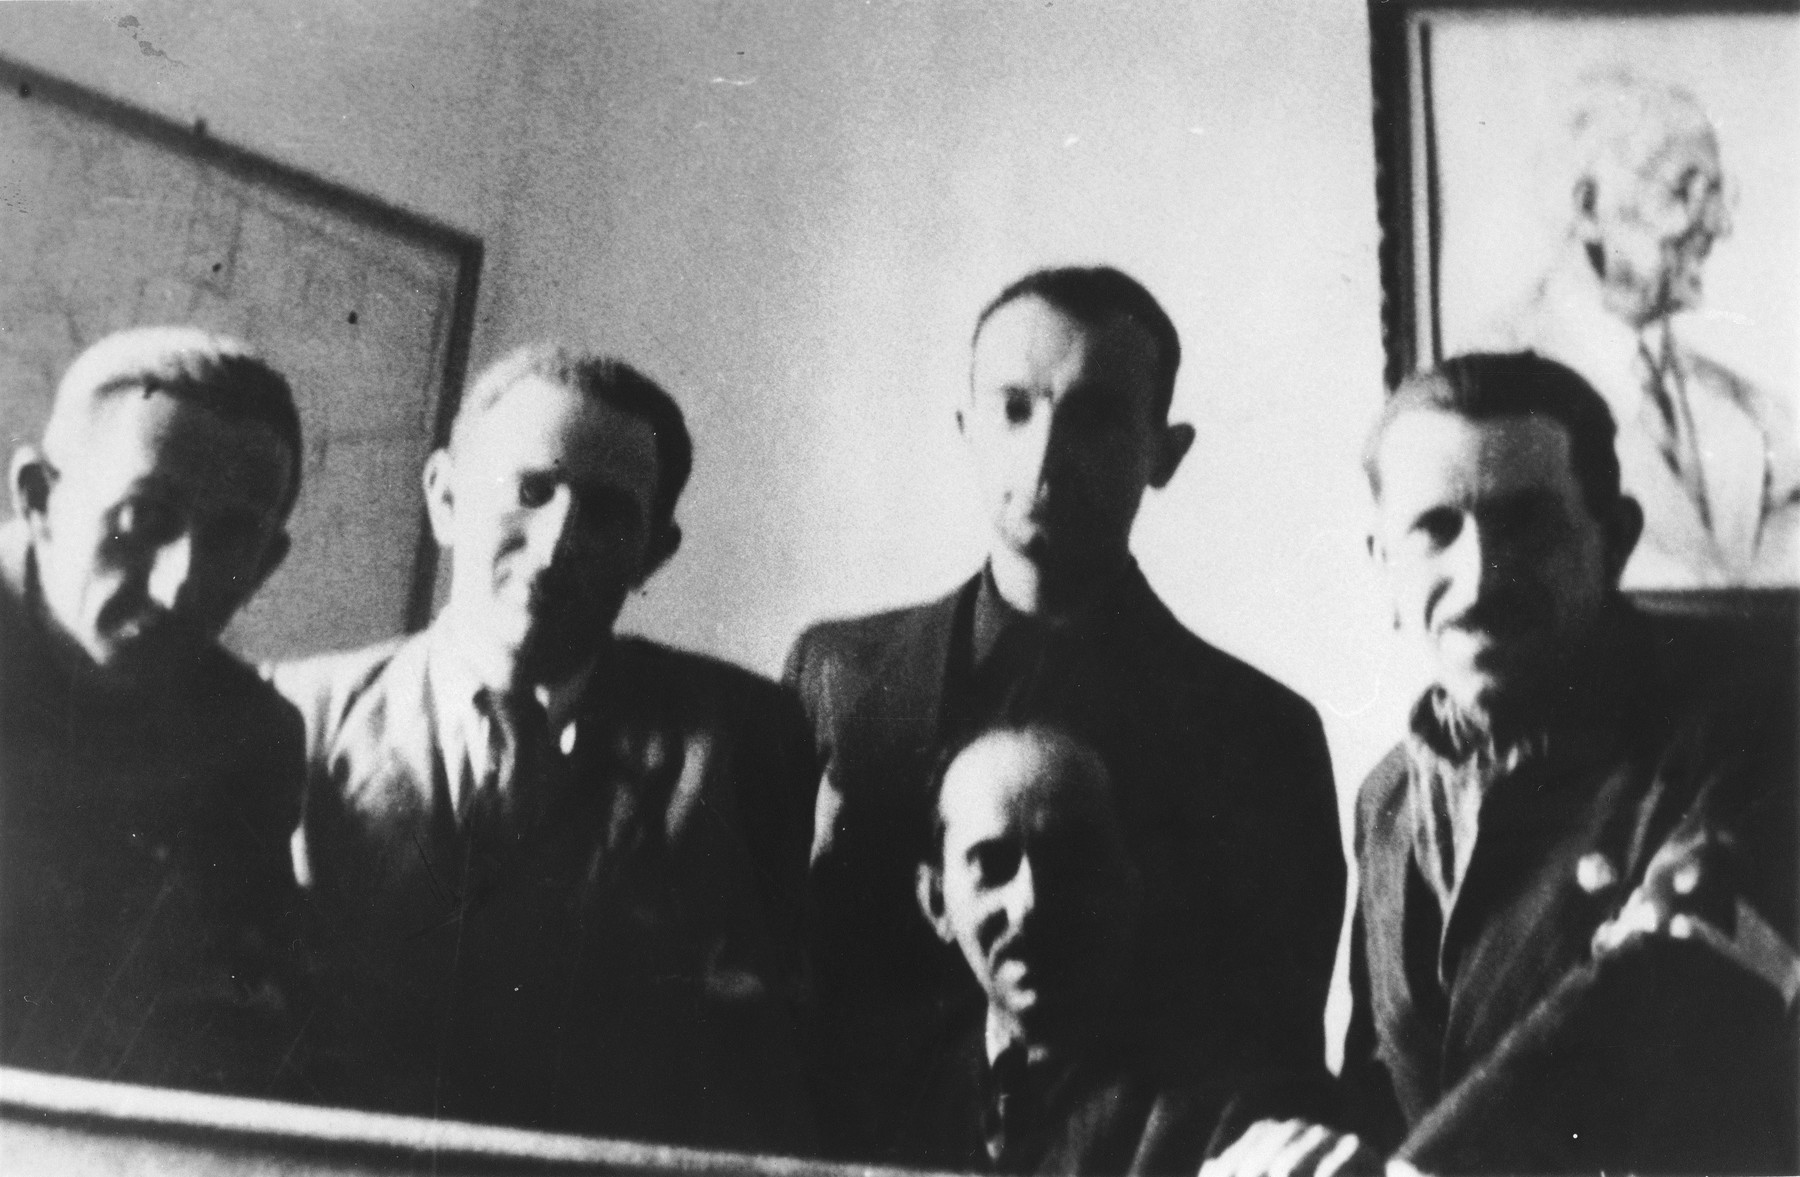 Four members of the Lodz ghetto leadership pose in an office beneath a portrait of Jewish council chairman Mordechai Chaim Rumkowski.